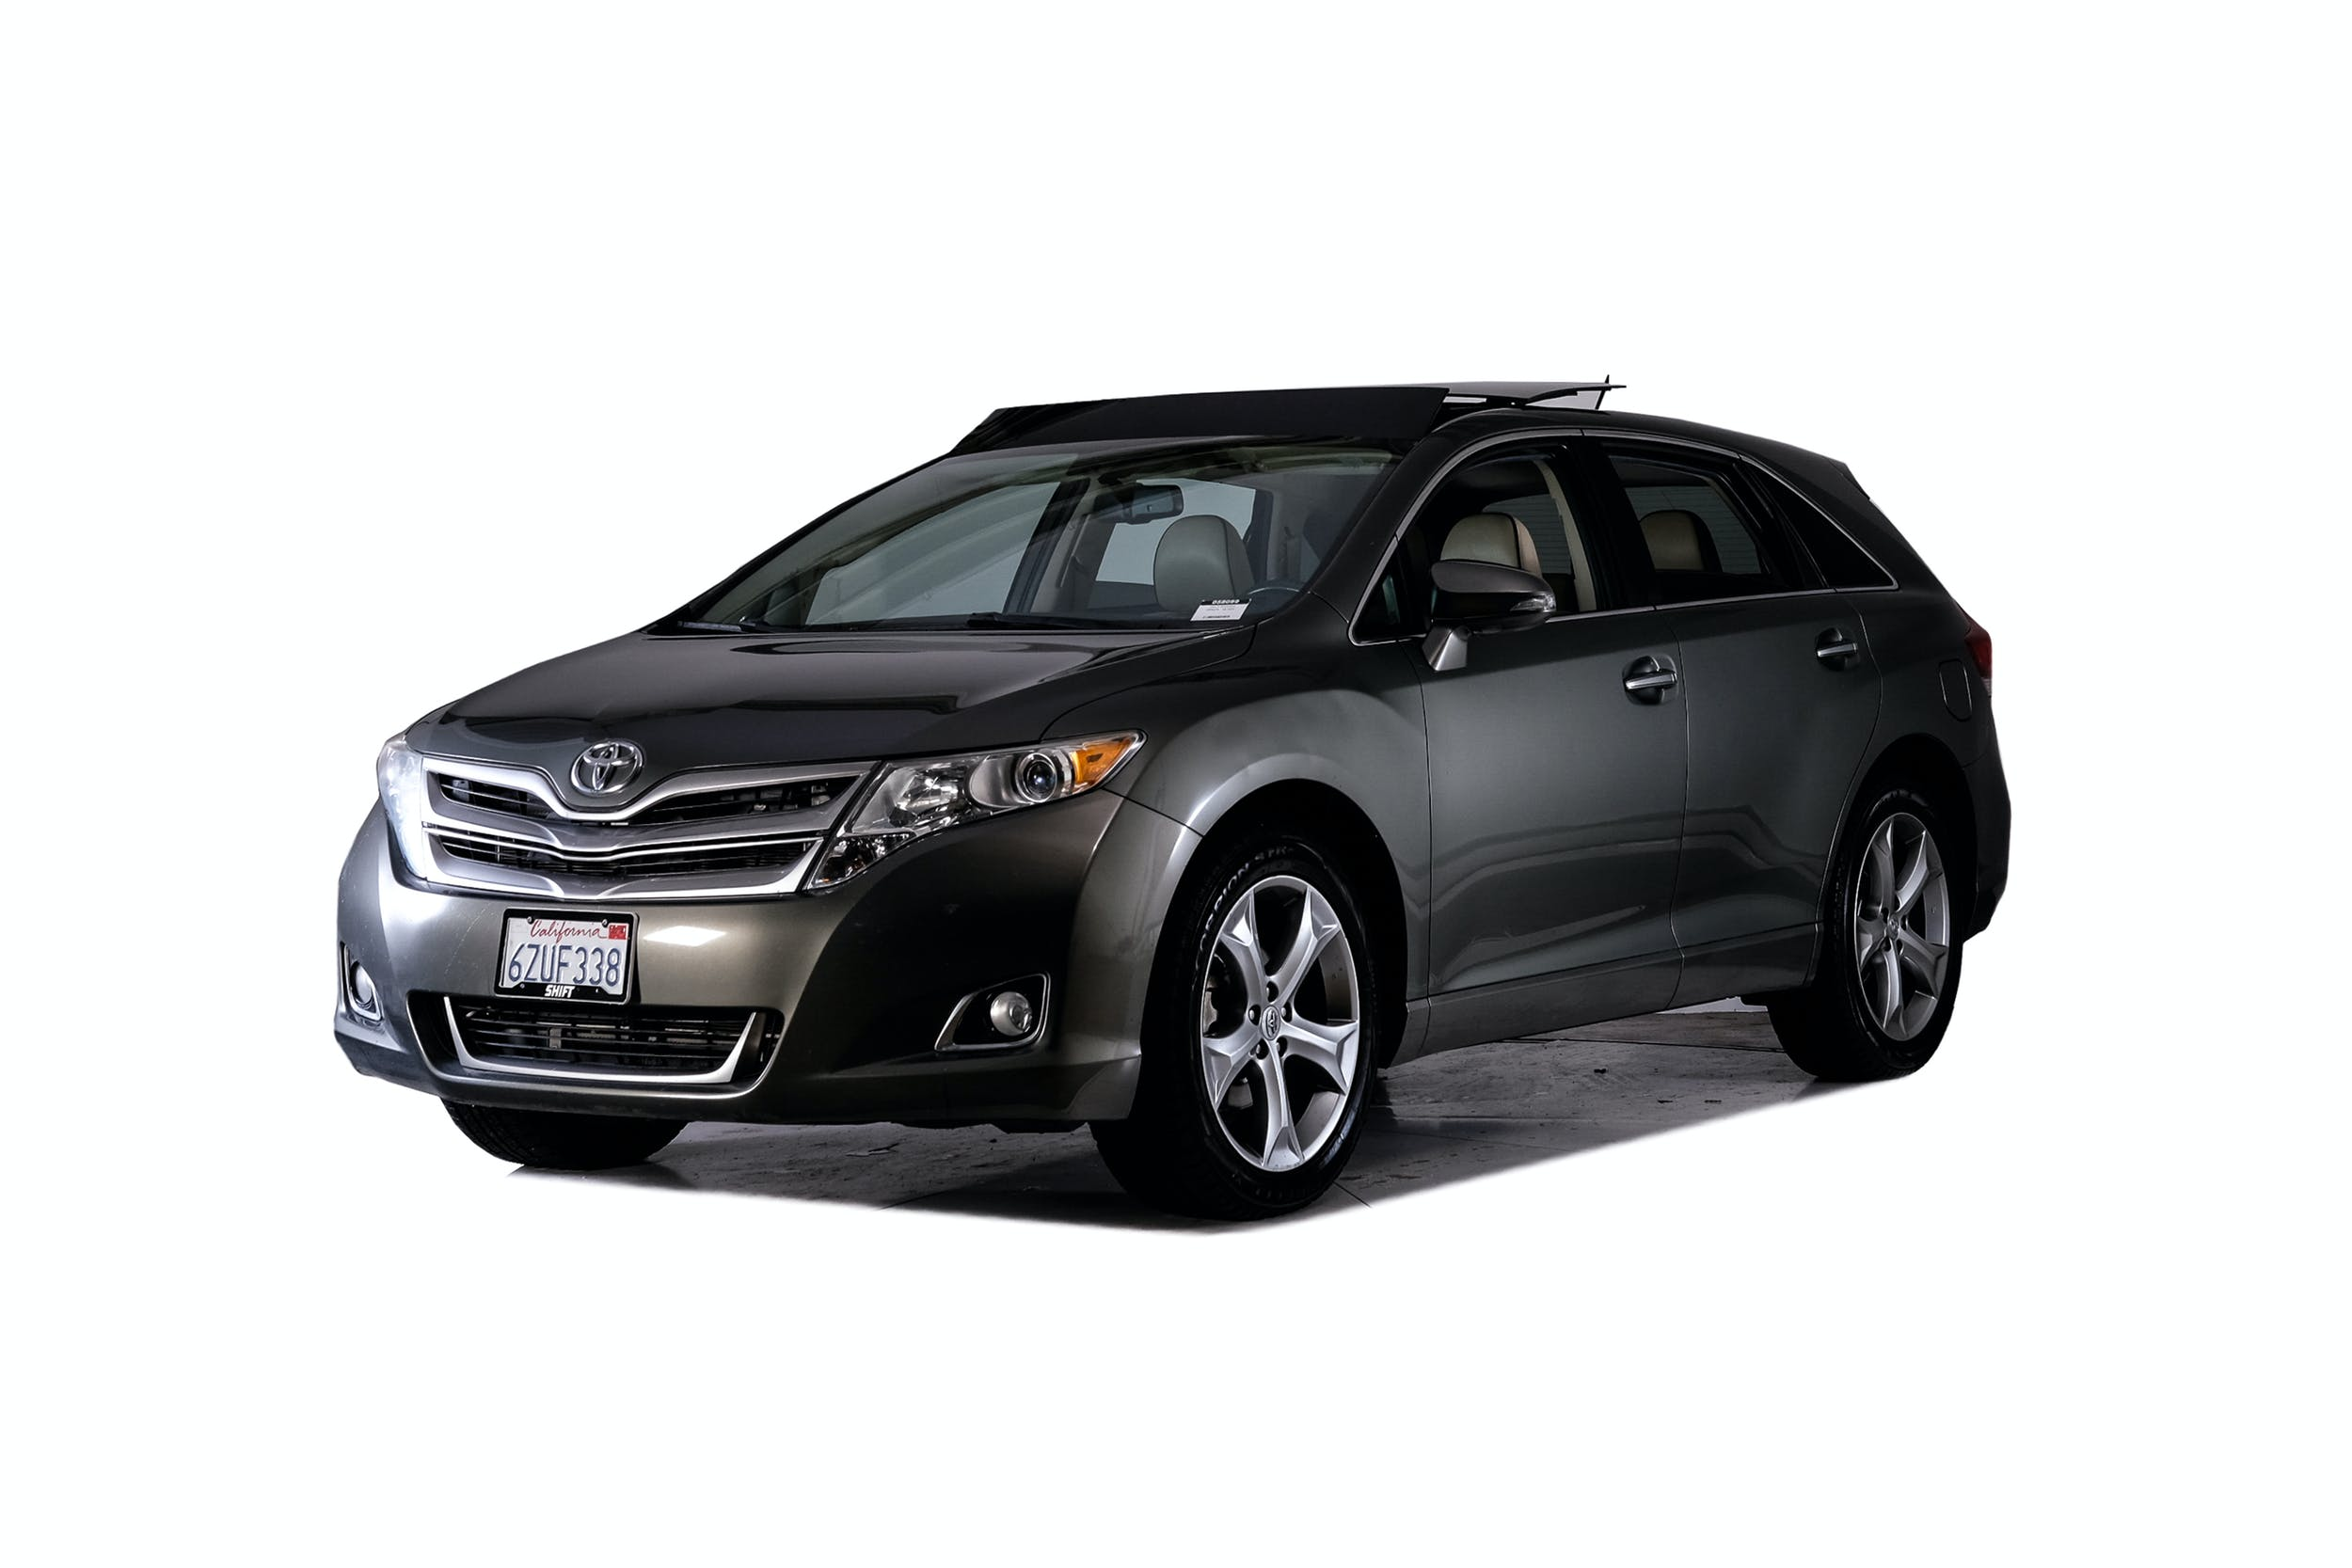 side wagon brockville view toyota automobiles station used in on image door venza photo brown details left